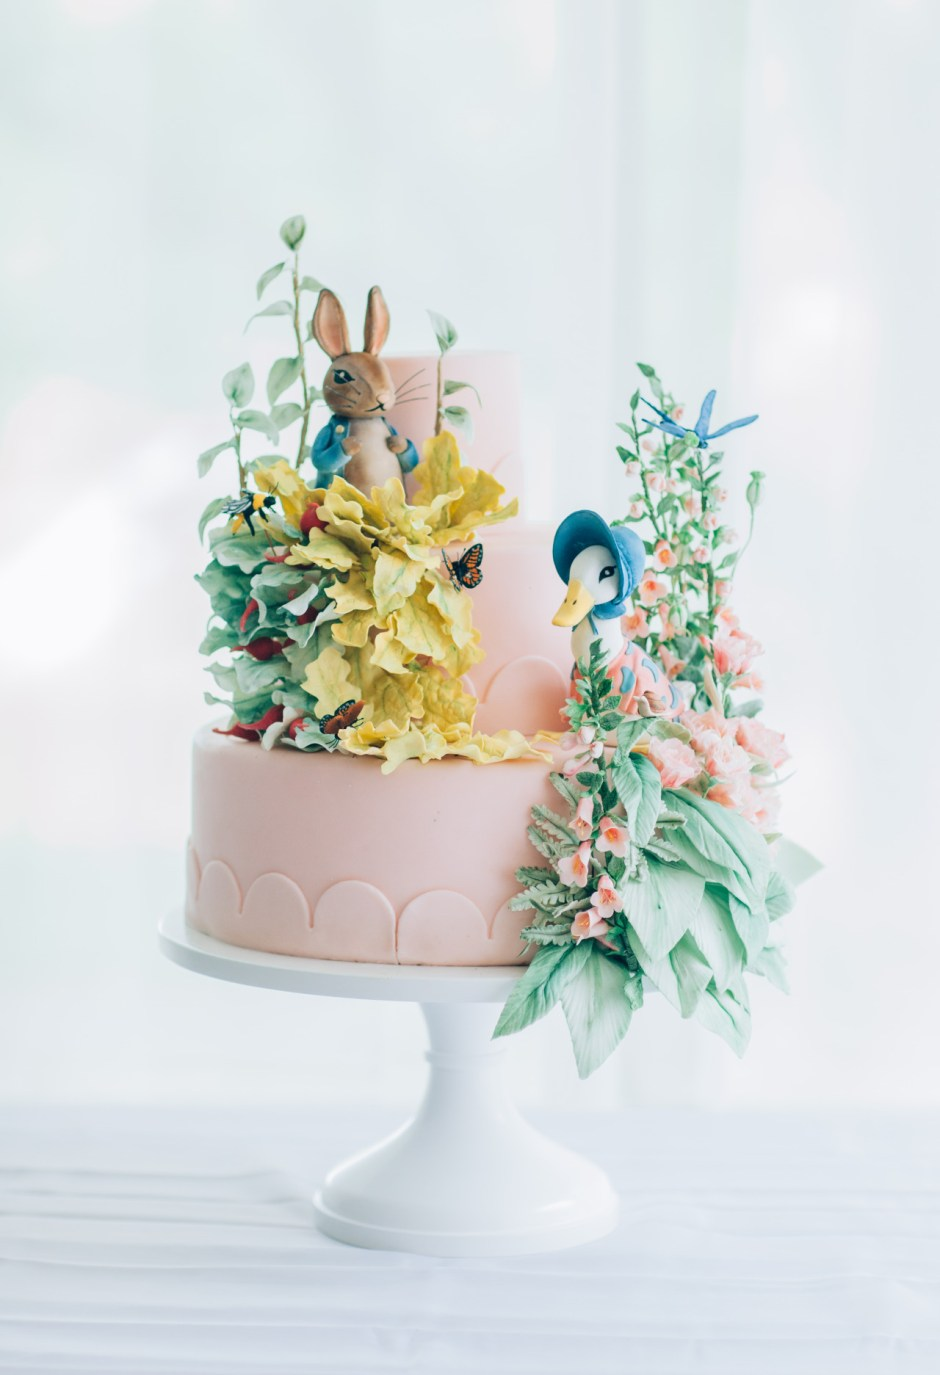 Mischief Maker Cakes I Beatrix Potter Cake I Peter Rabbit Cake I Jemima Puddleduck Cake   I First Birthday Cake I Beatrix Potter First Birthday  #beatrixpotter #beatrixpottercake #beatrixpotterparty